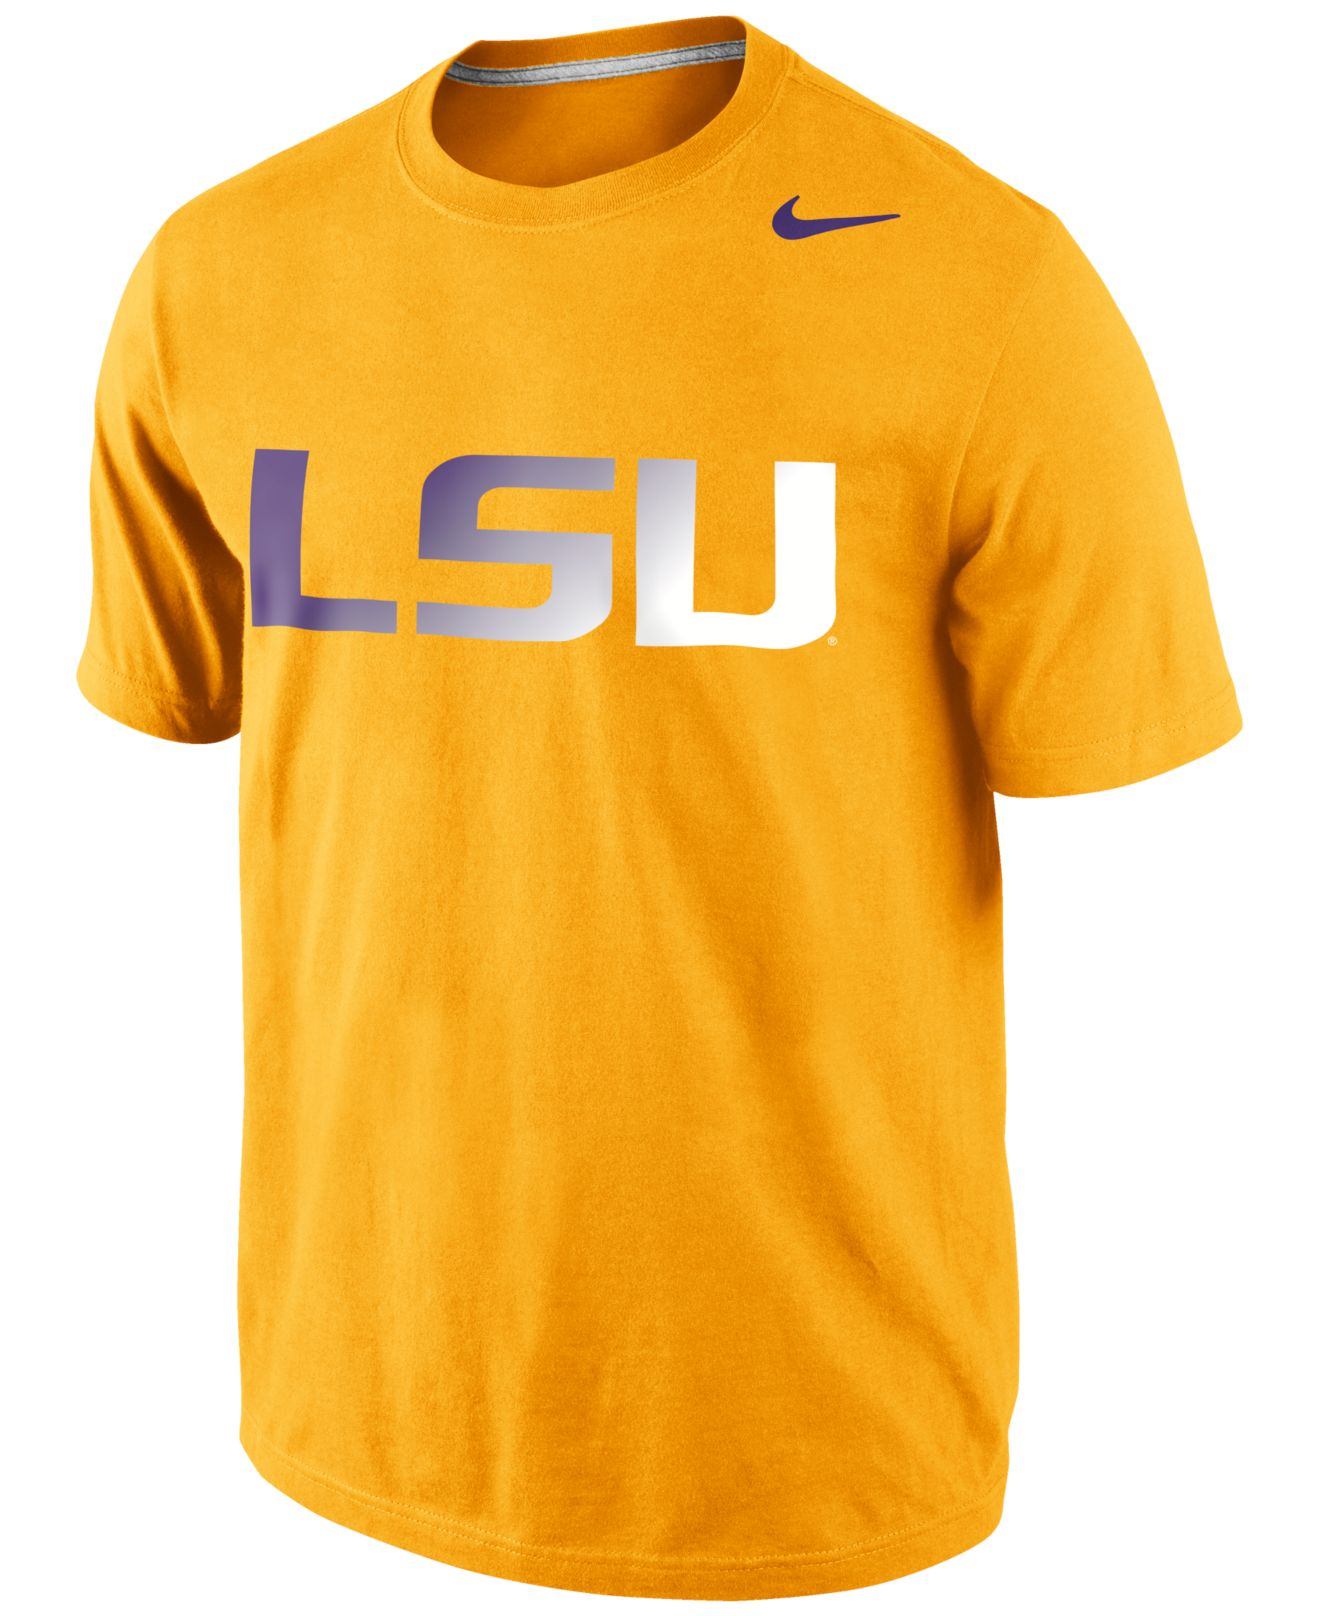 Nike lsu tigers gradient t shirt in orange for men gold lyst